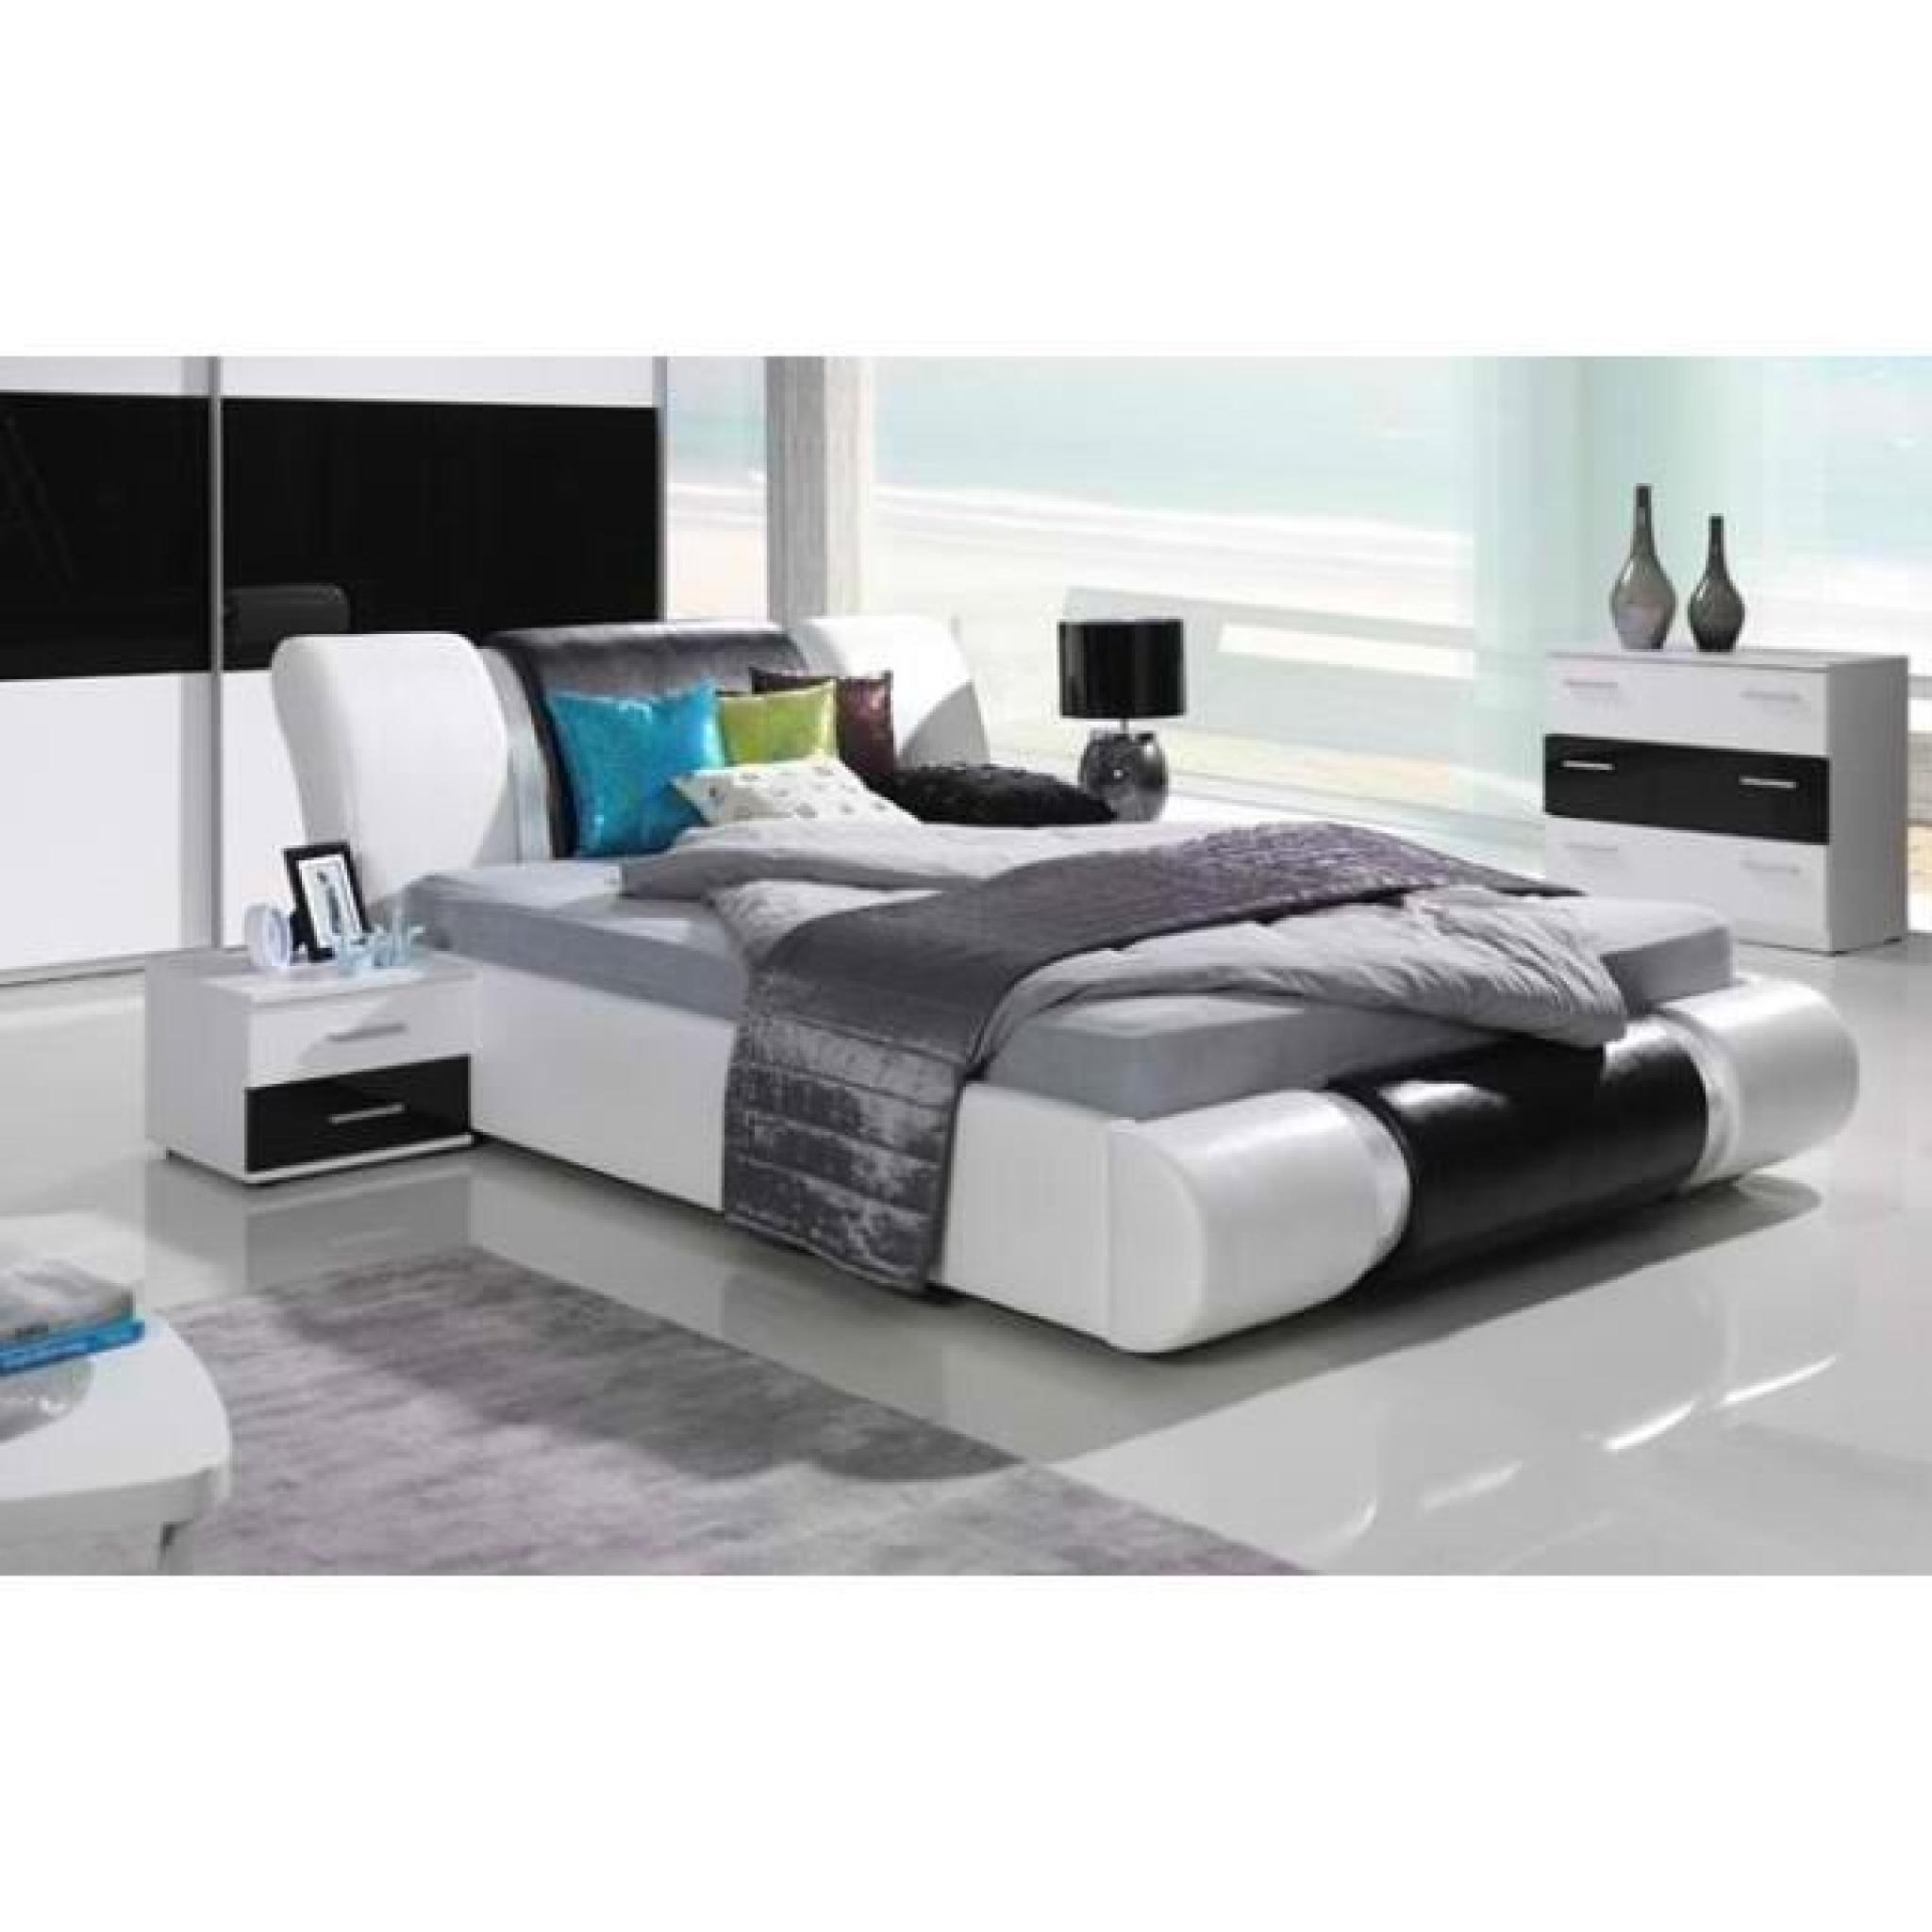 ensemble meubles design pour chambre coucher texas blanc et noir laqu lit 2 chevets. Black Bedroom Furniture Sets. Home Design Ideas